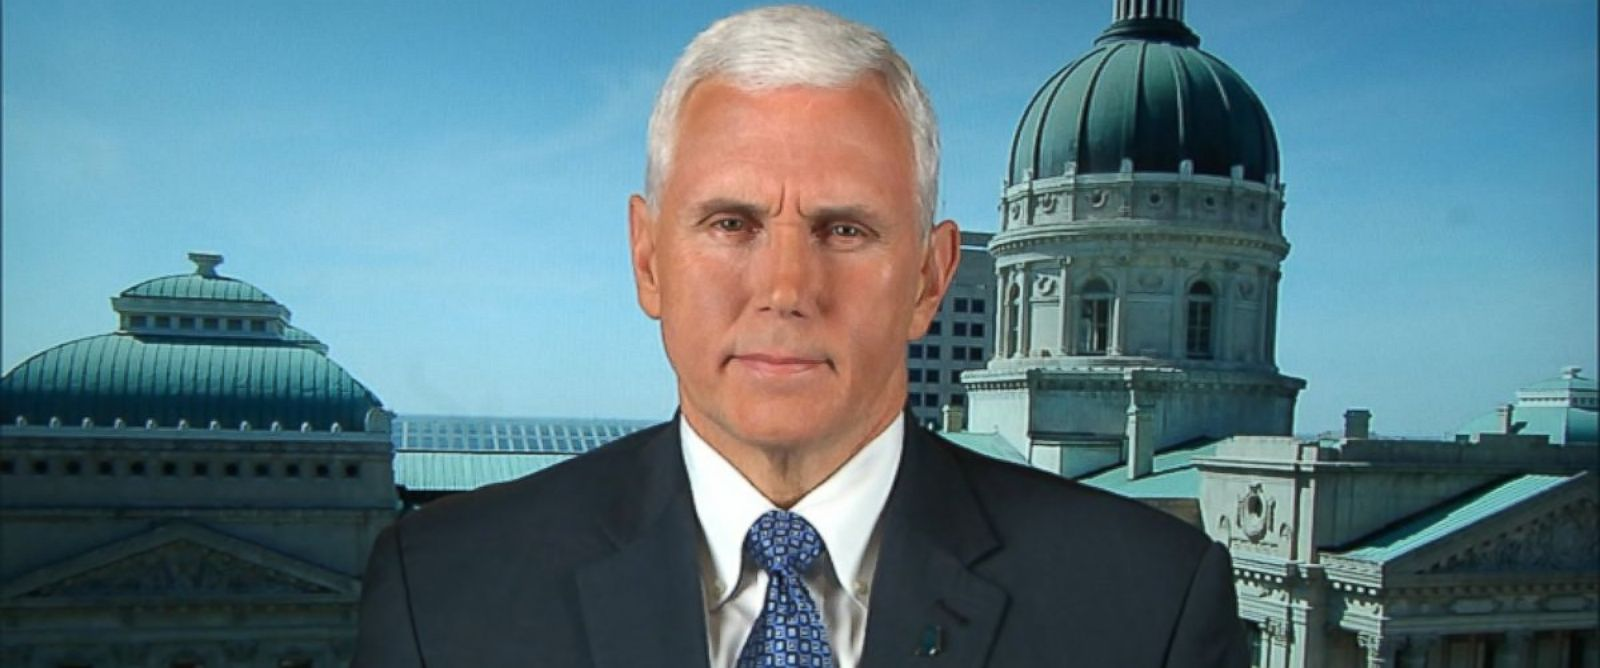 PHOTO: Gov. Mike Pence on This Week